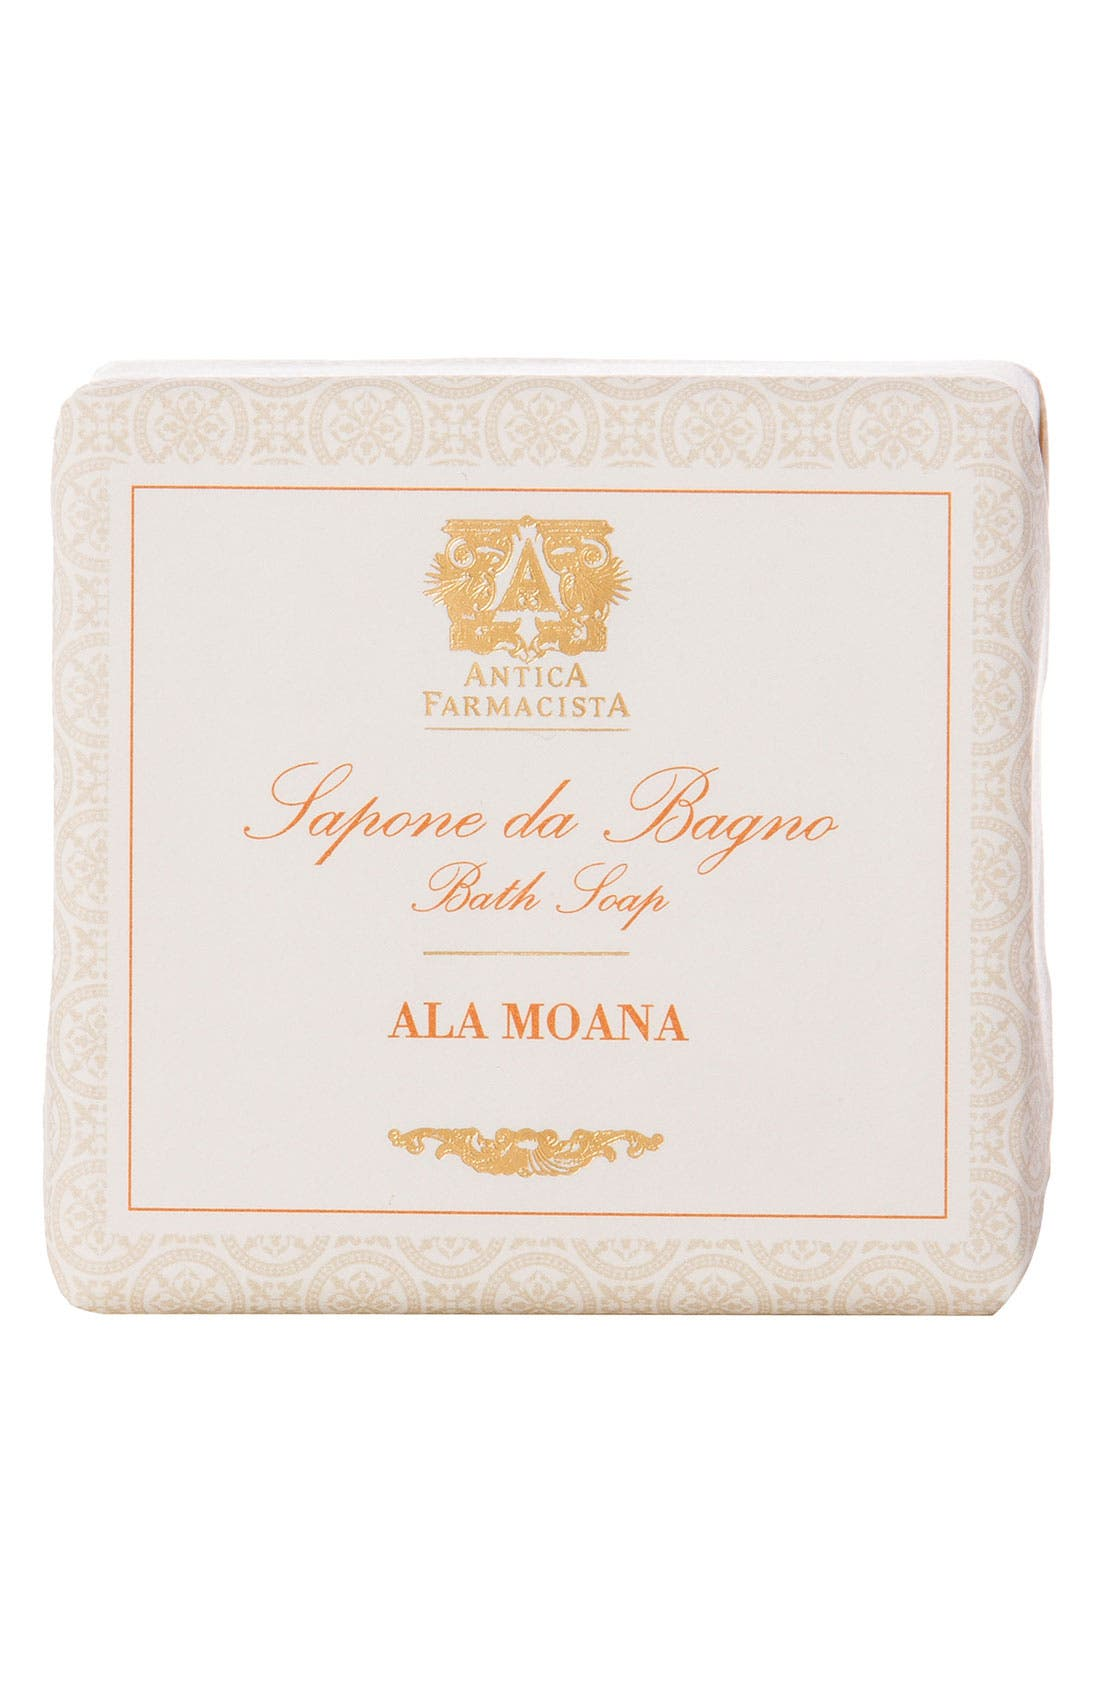 Antica Farmacista 'Ala Moana' Bar Soap